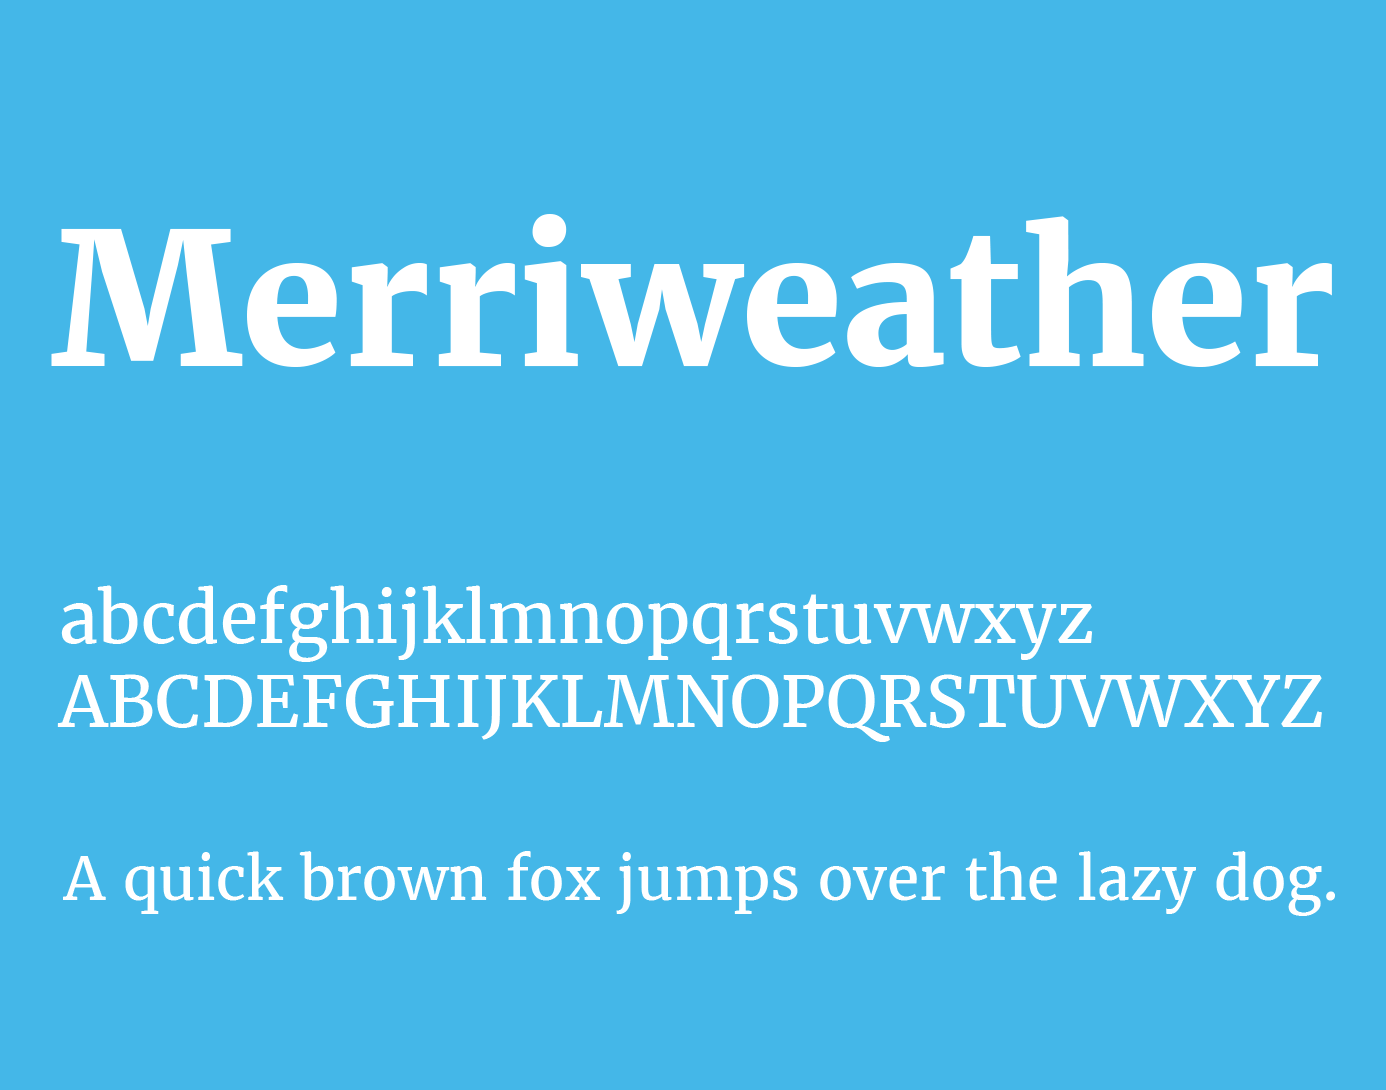 https://fontclarity.com/wp-content/uploads/2019/09/merriweather-download-0.png Free Download